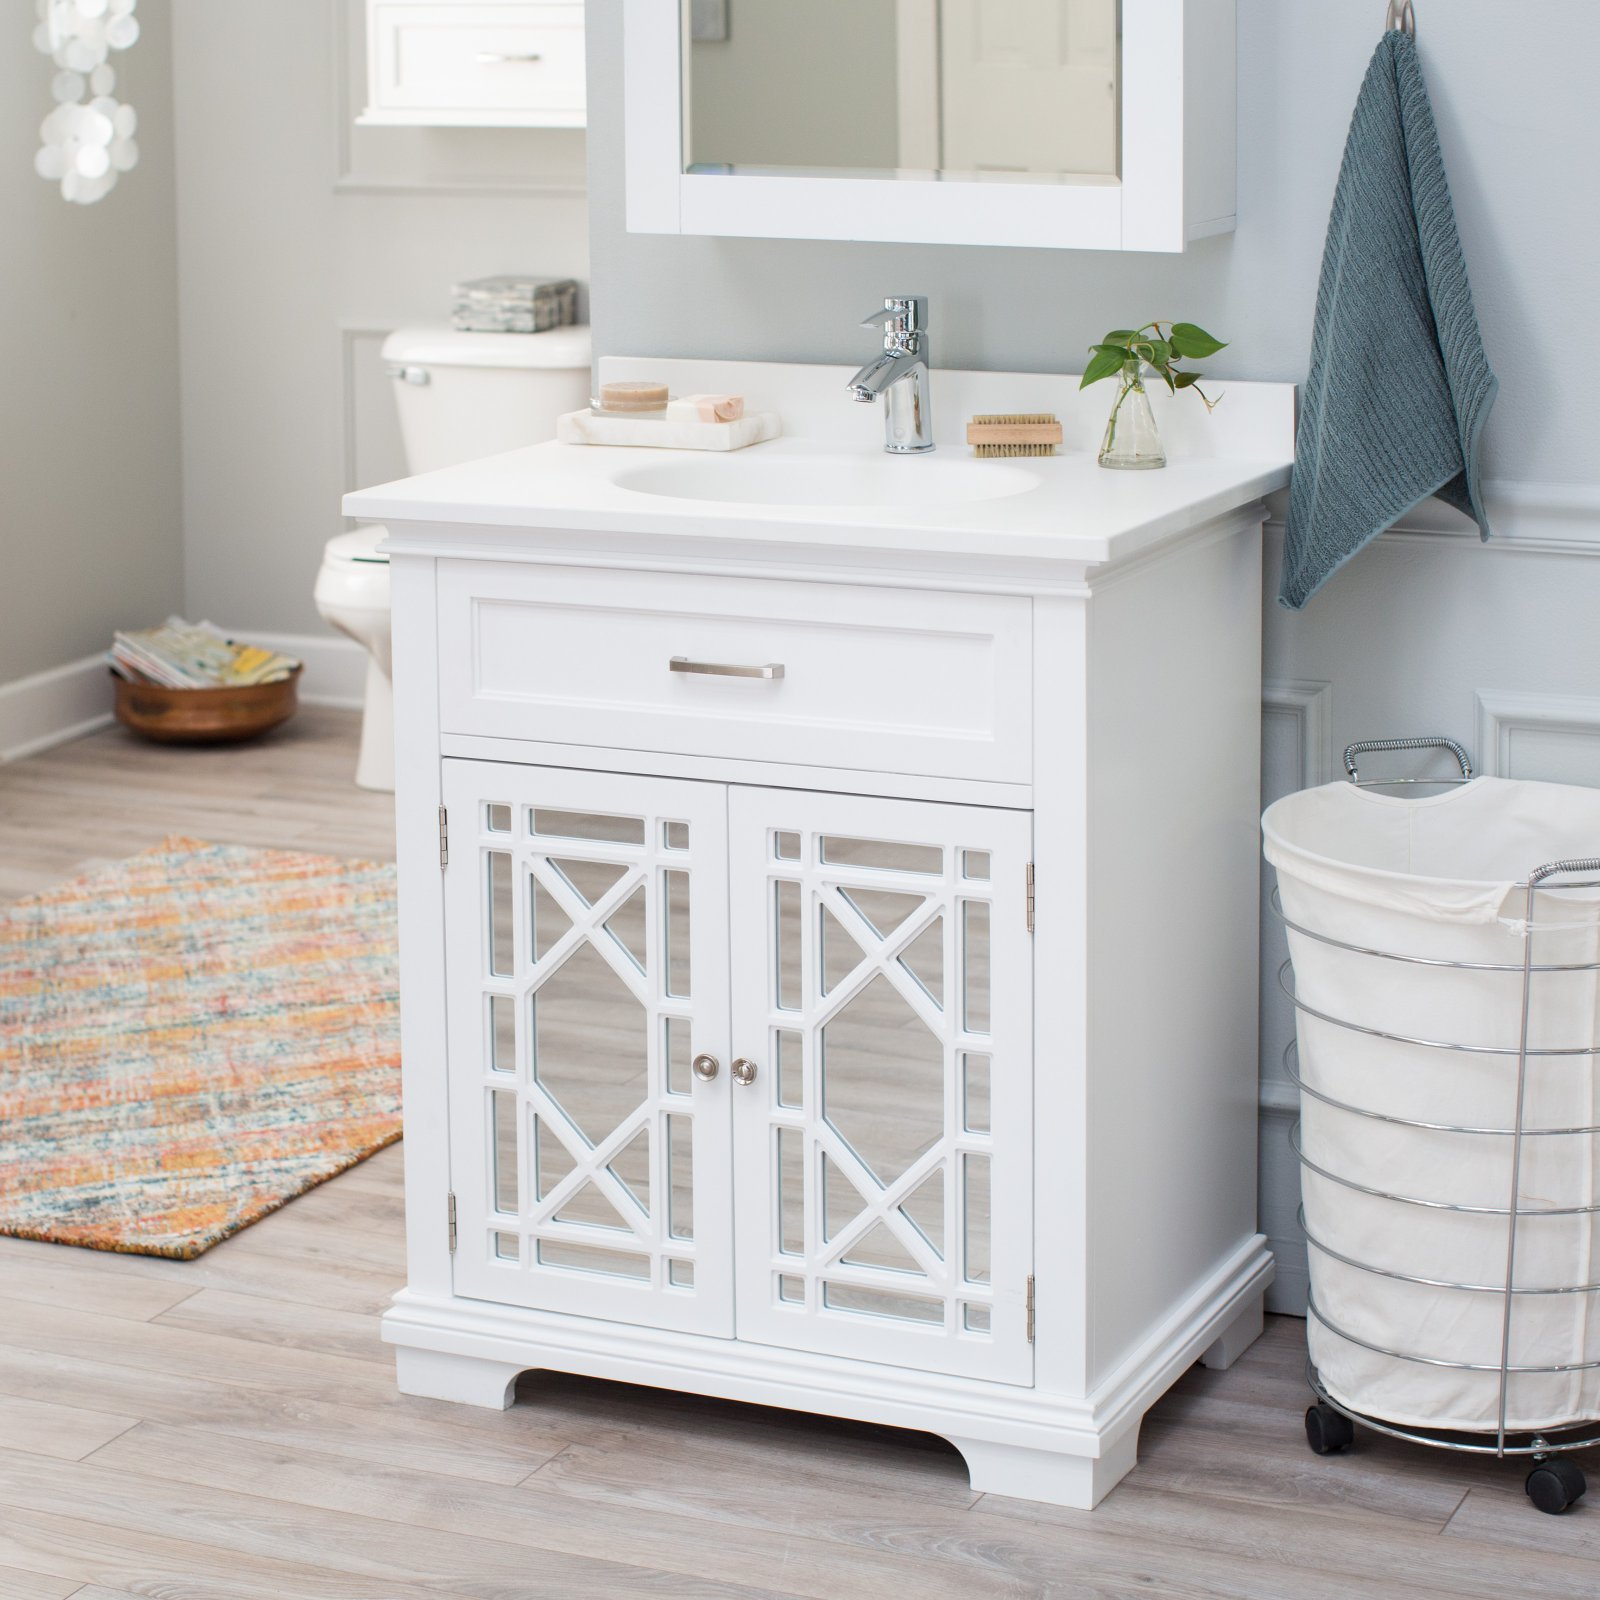 Belham Living Florence Bath Vanity with Optional Sink and Faucet